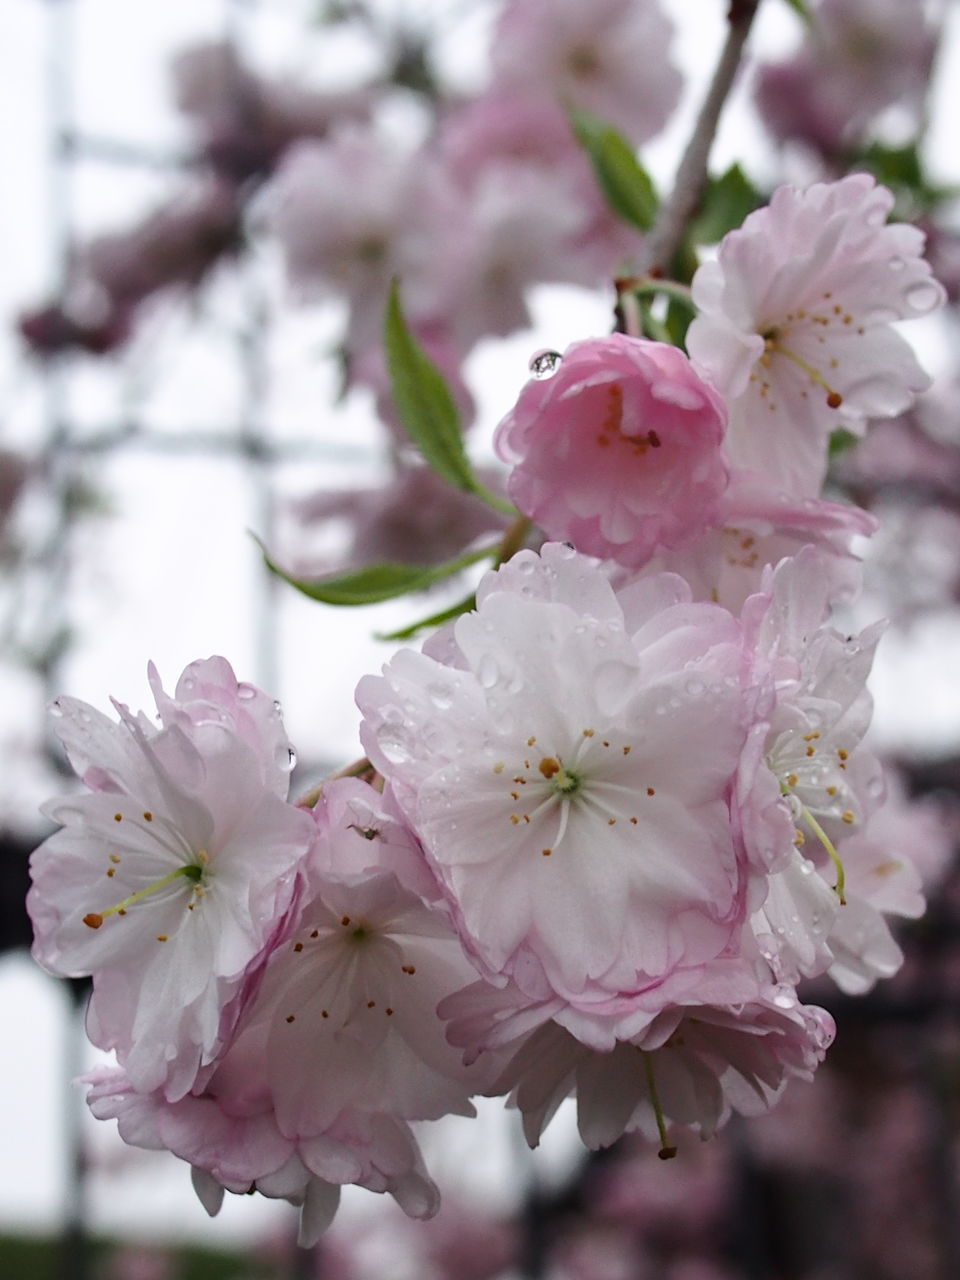 flower, fragility, blossom, beauty in nature, springtime, pink color, petal, botany, nature, growth, freshness, flower head, tree, close-up, white color, apple blossom, no people, branch, twig, stamen, day, focus on foreground, outdoors, plum blossom, blooming